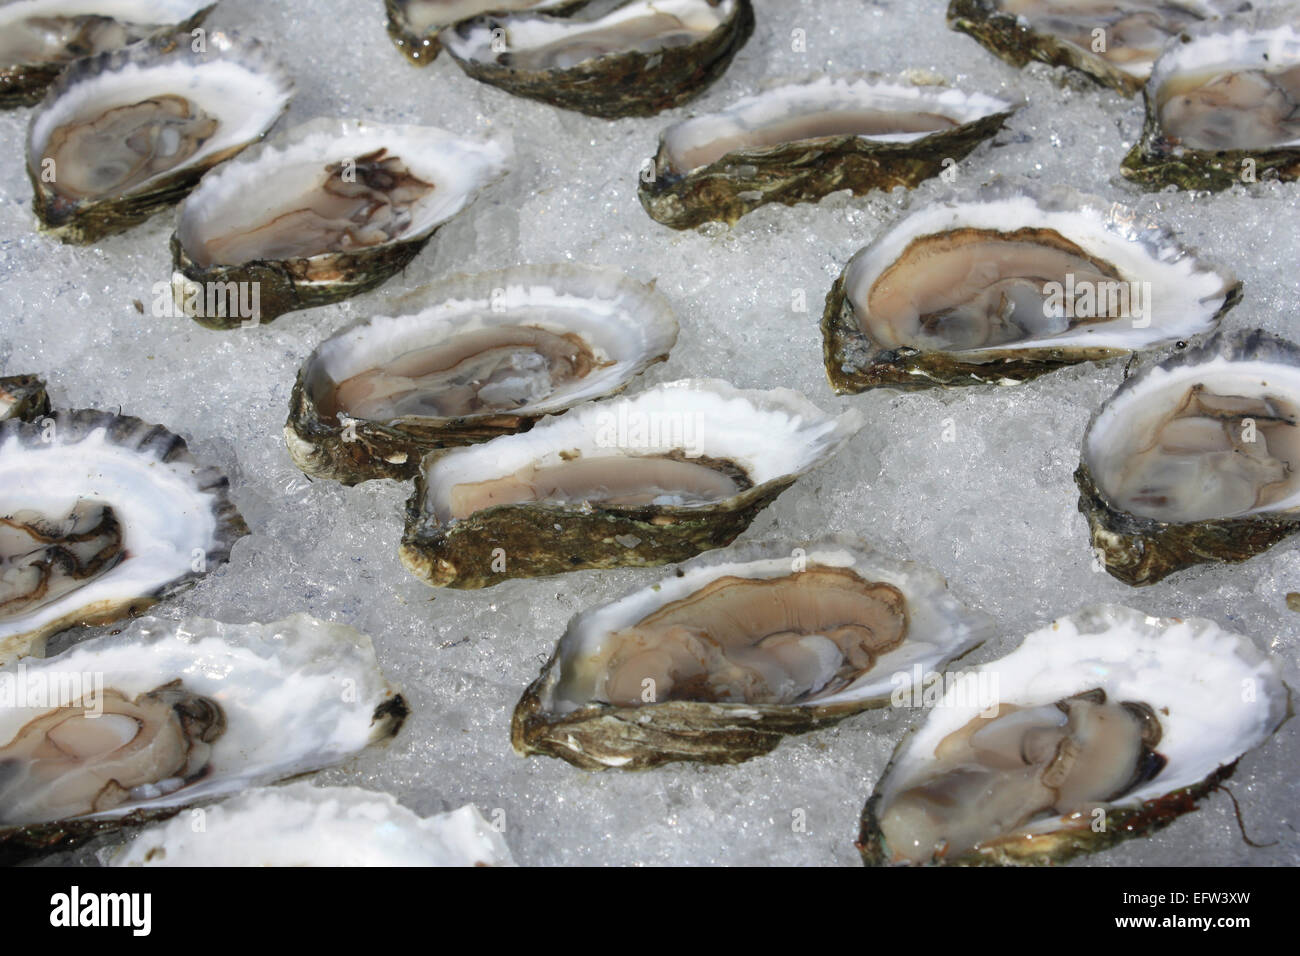 Oysters on ice at the Wellfleet Oyster Festival, Cape Cod, Massachusetts. Stock Photo